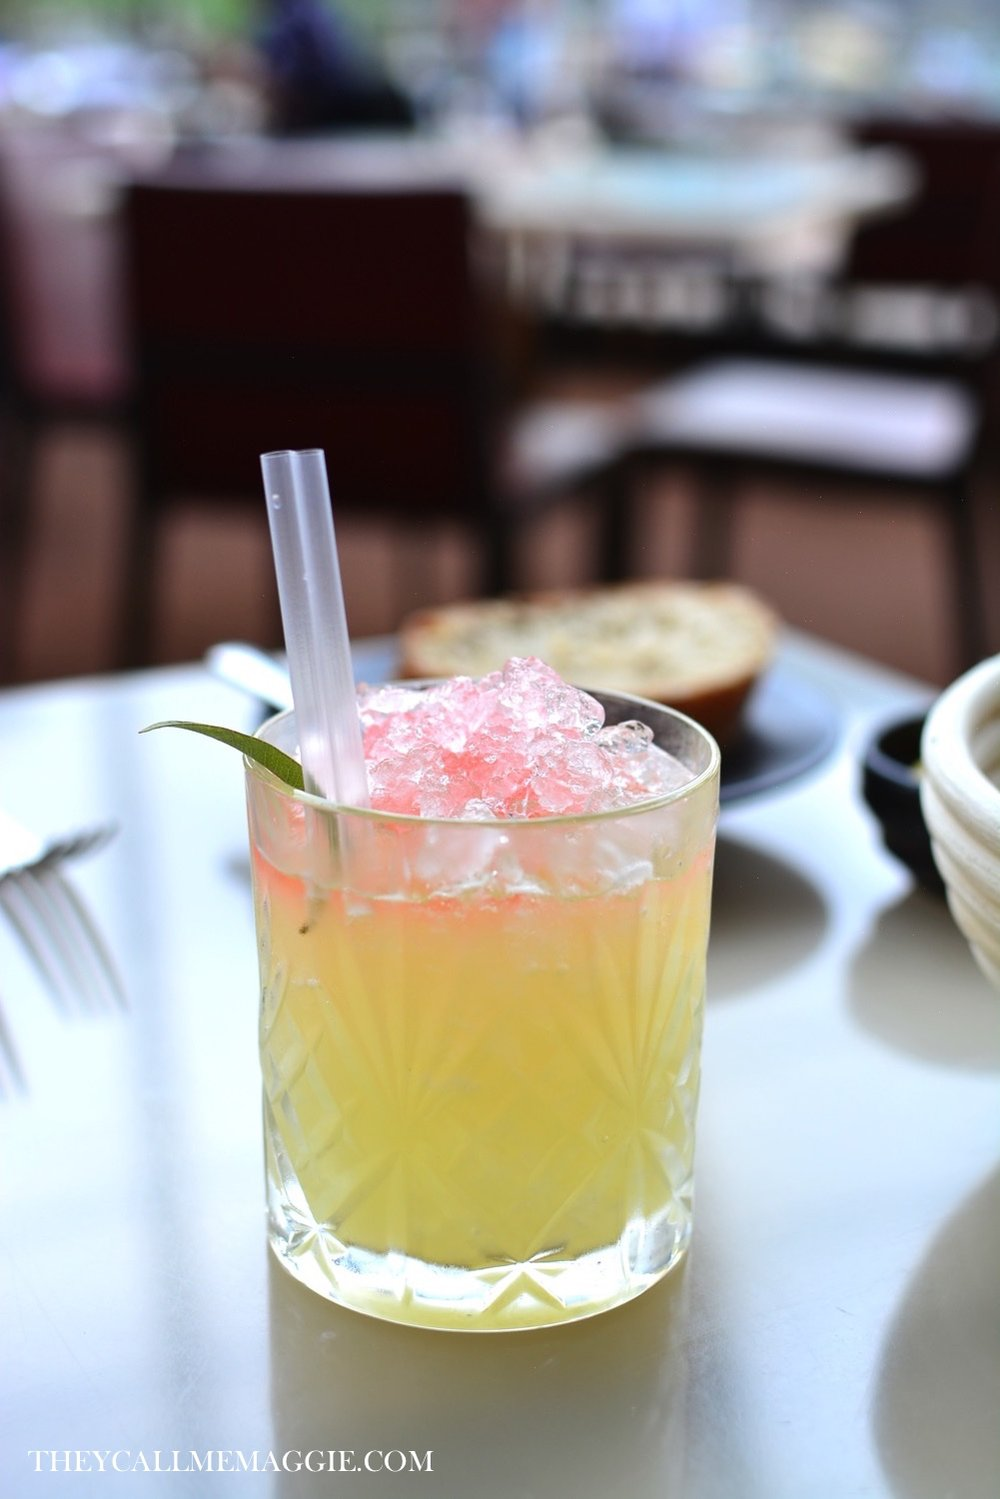 bennelong-mocktail.jpg